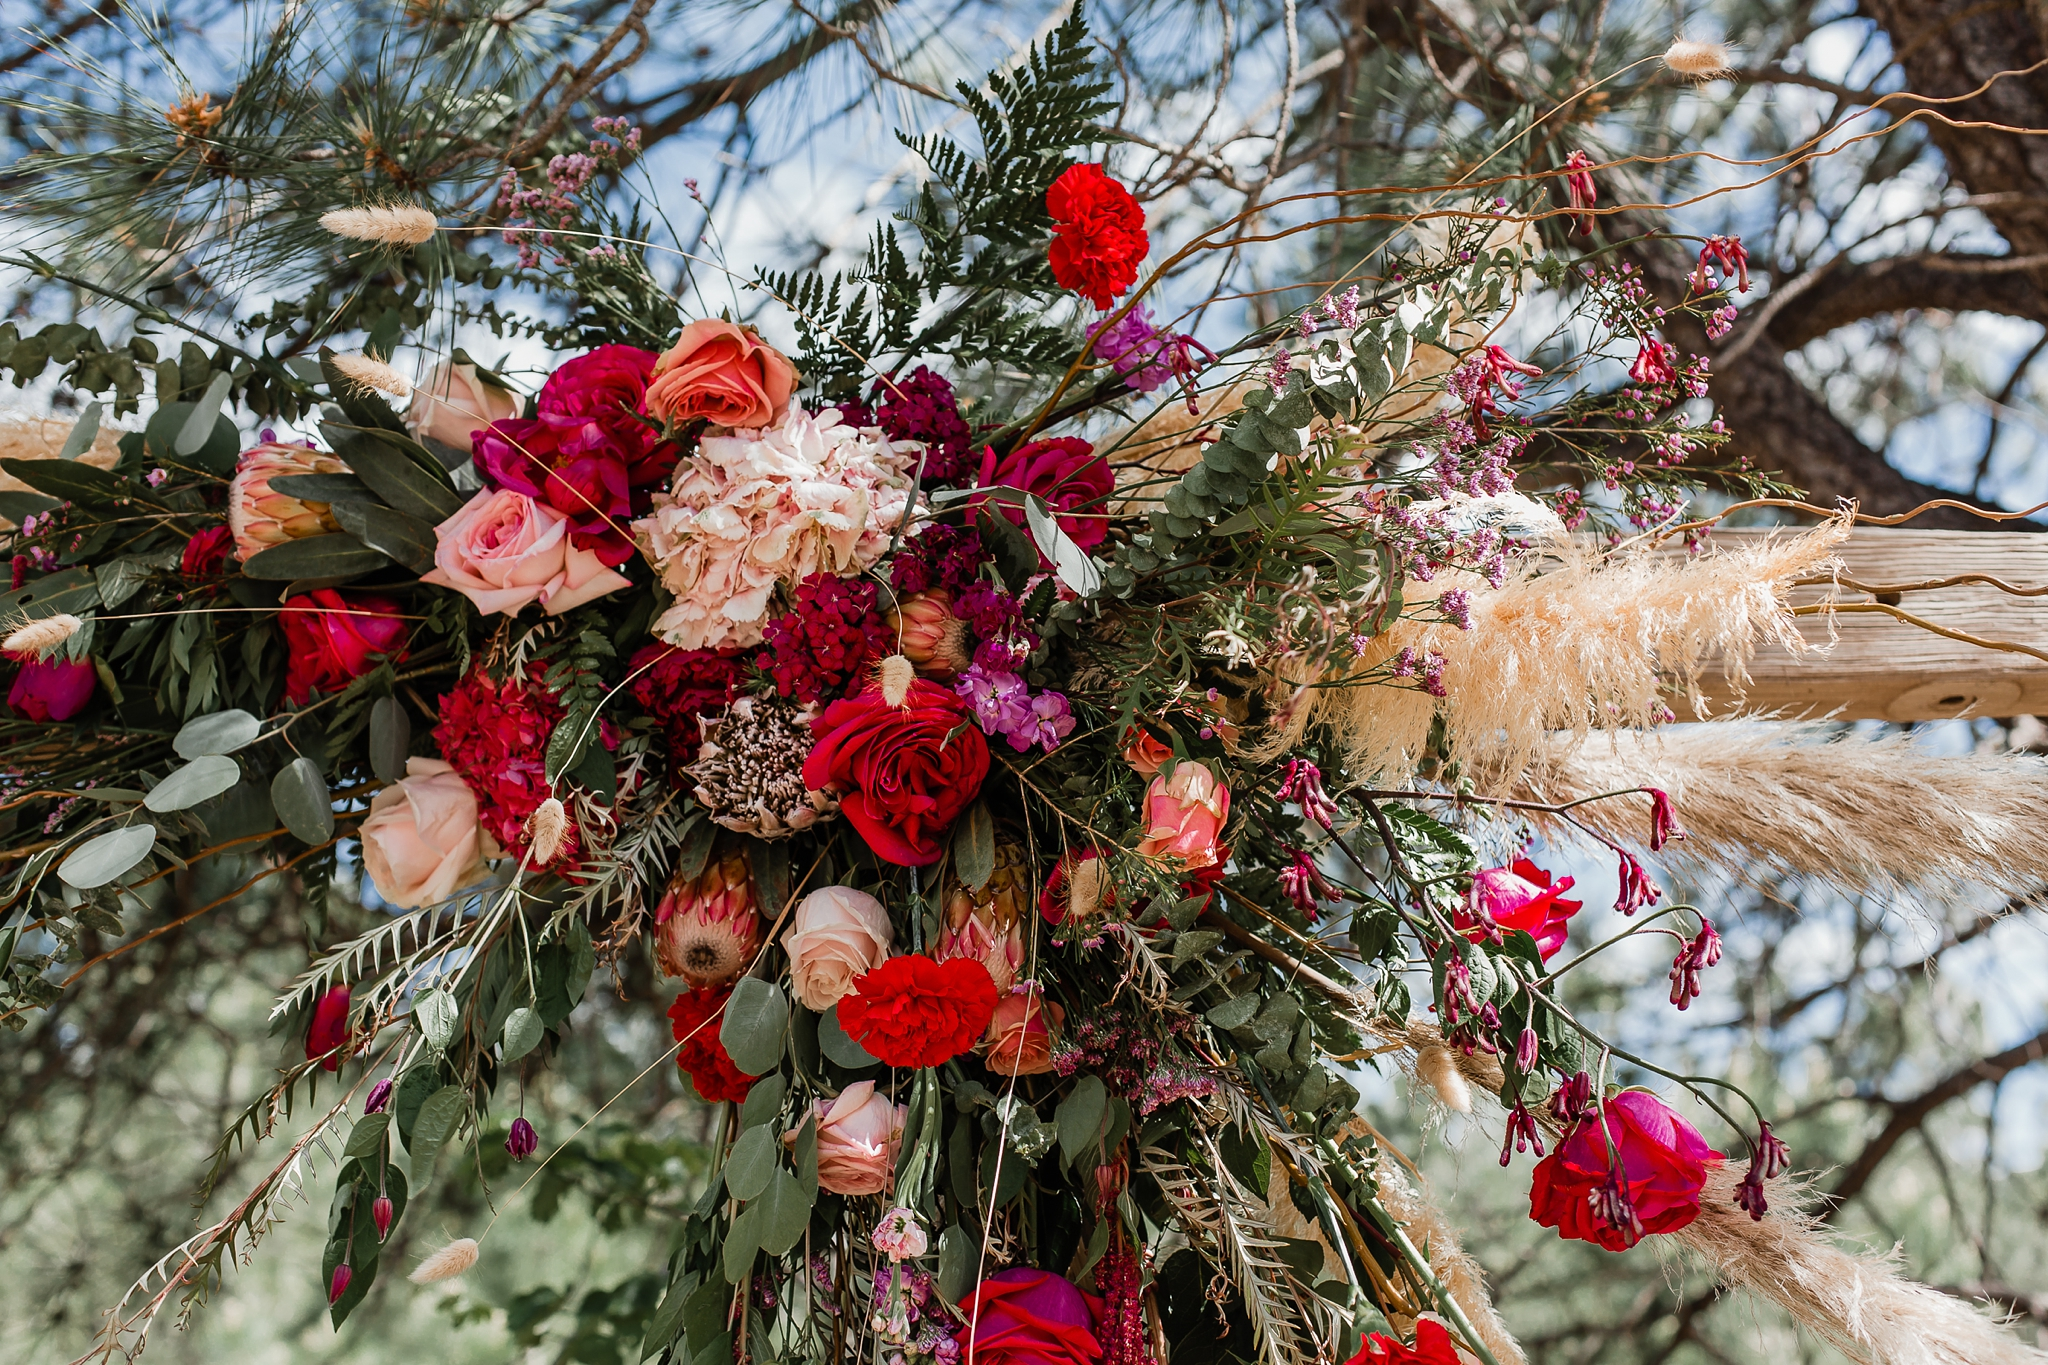 Alicia+lucia+photography+-+albuquerque+wedding+photographer+-+santa+fe+wedding+photography+-+new+mexico+wedding+photographer+-+new+mexico+wedding+-+new+mexico+wedding+-+barn+wedding+-+enchanted+vine+barn+wedding+-+ruidoso+wedding_0032.jpg